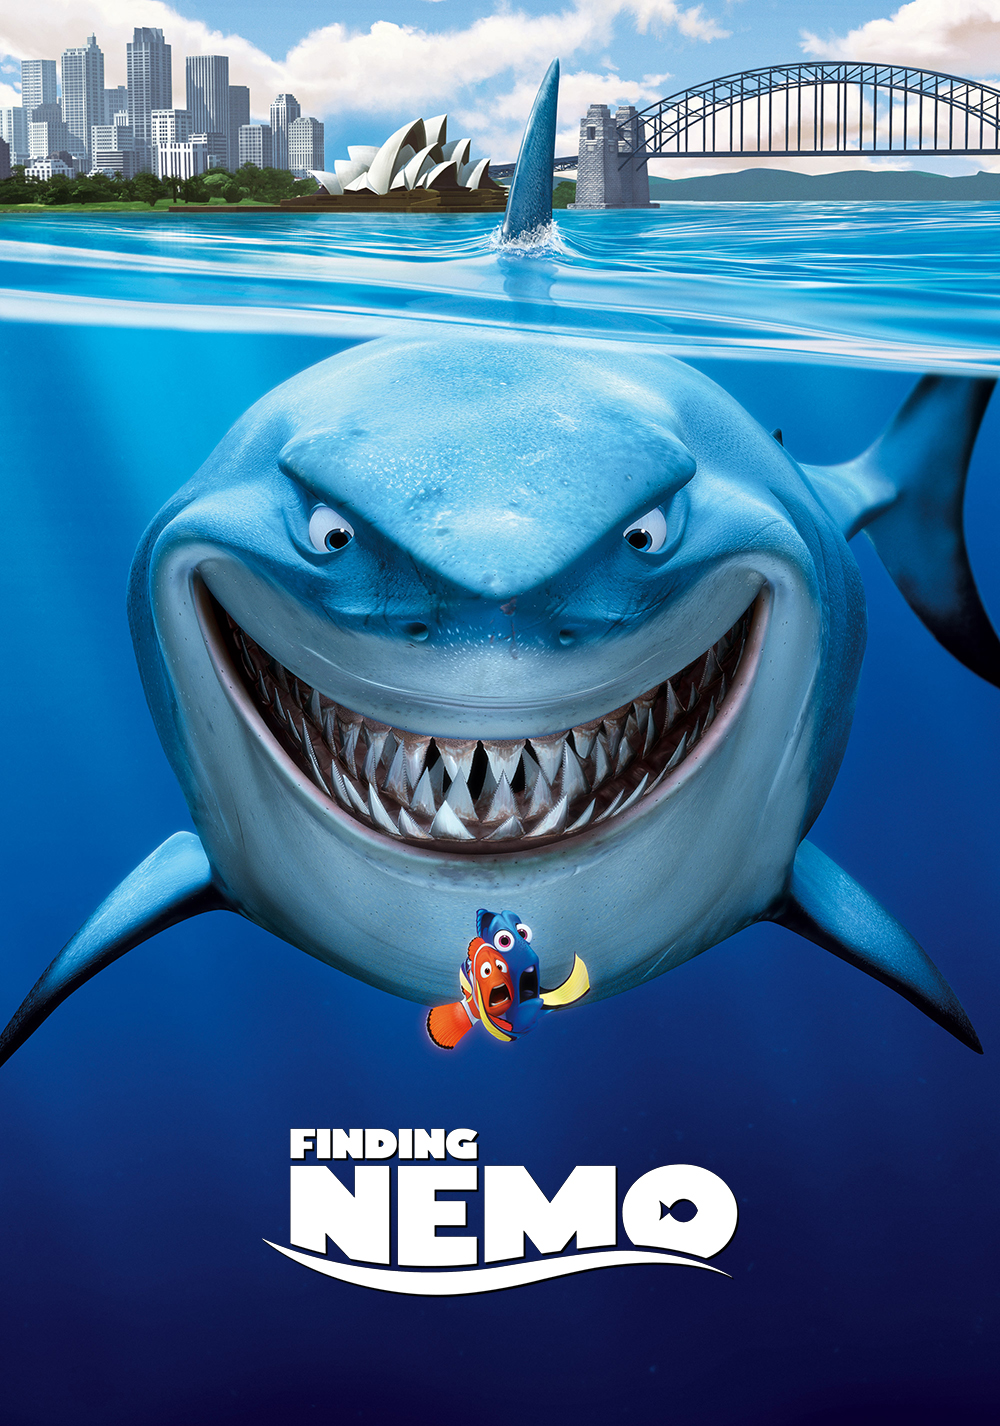 Finding Nemo (2003; animated)